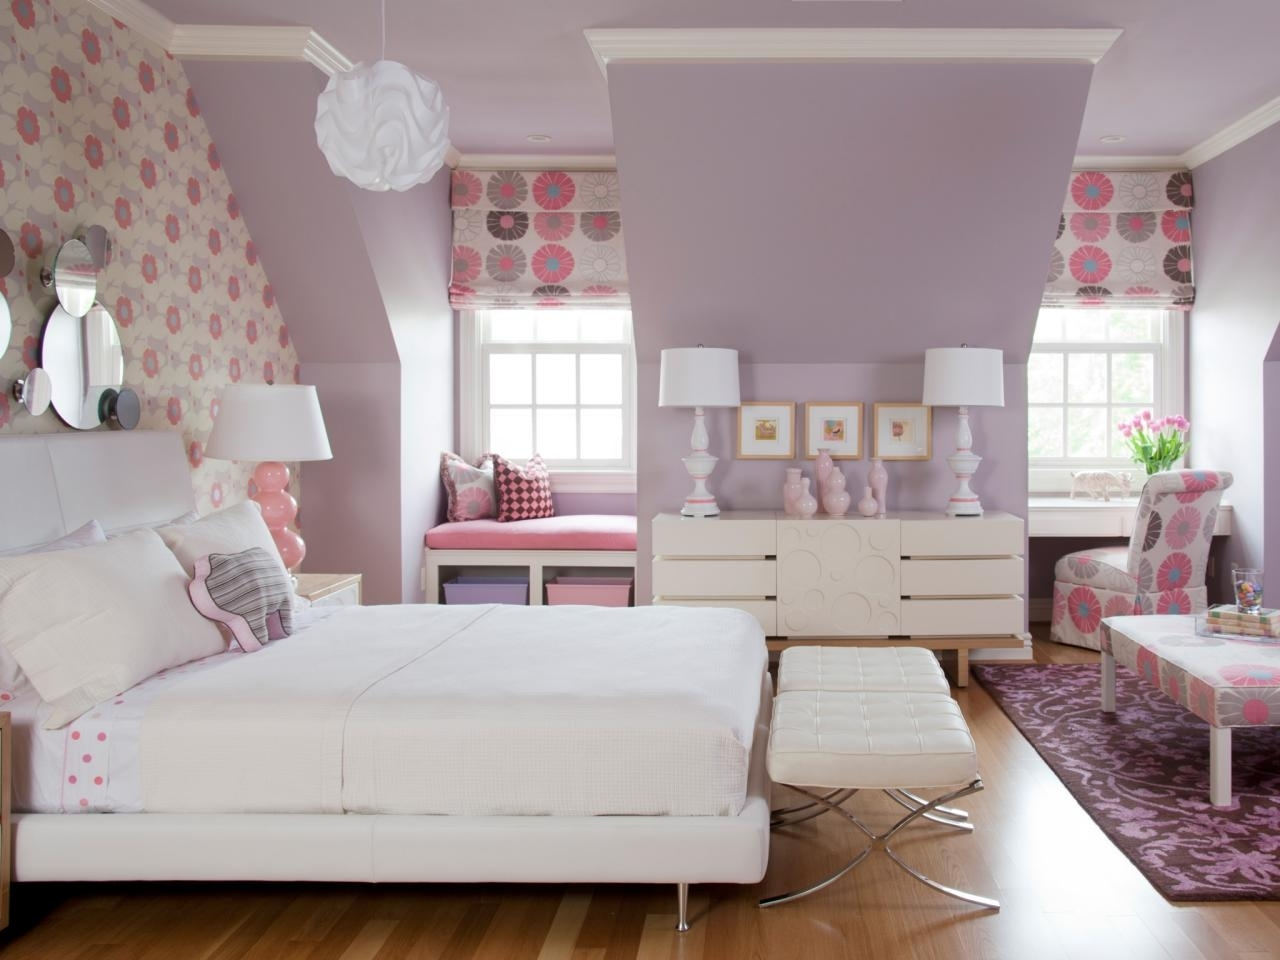 10 Pretty Paint Color Ideas For Bedrooms %name 2021